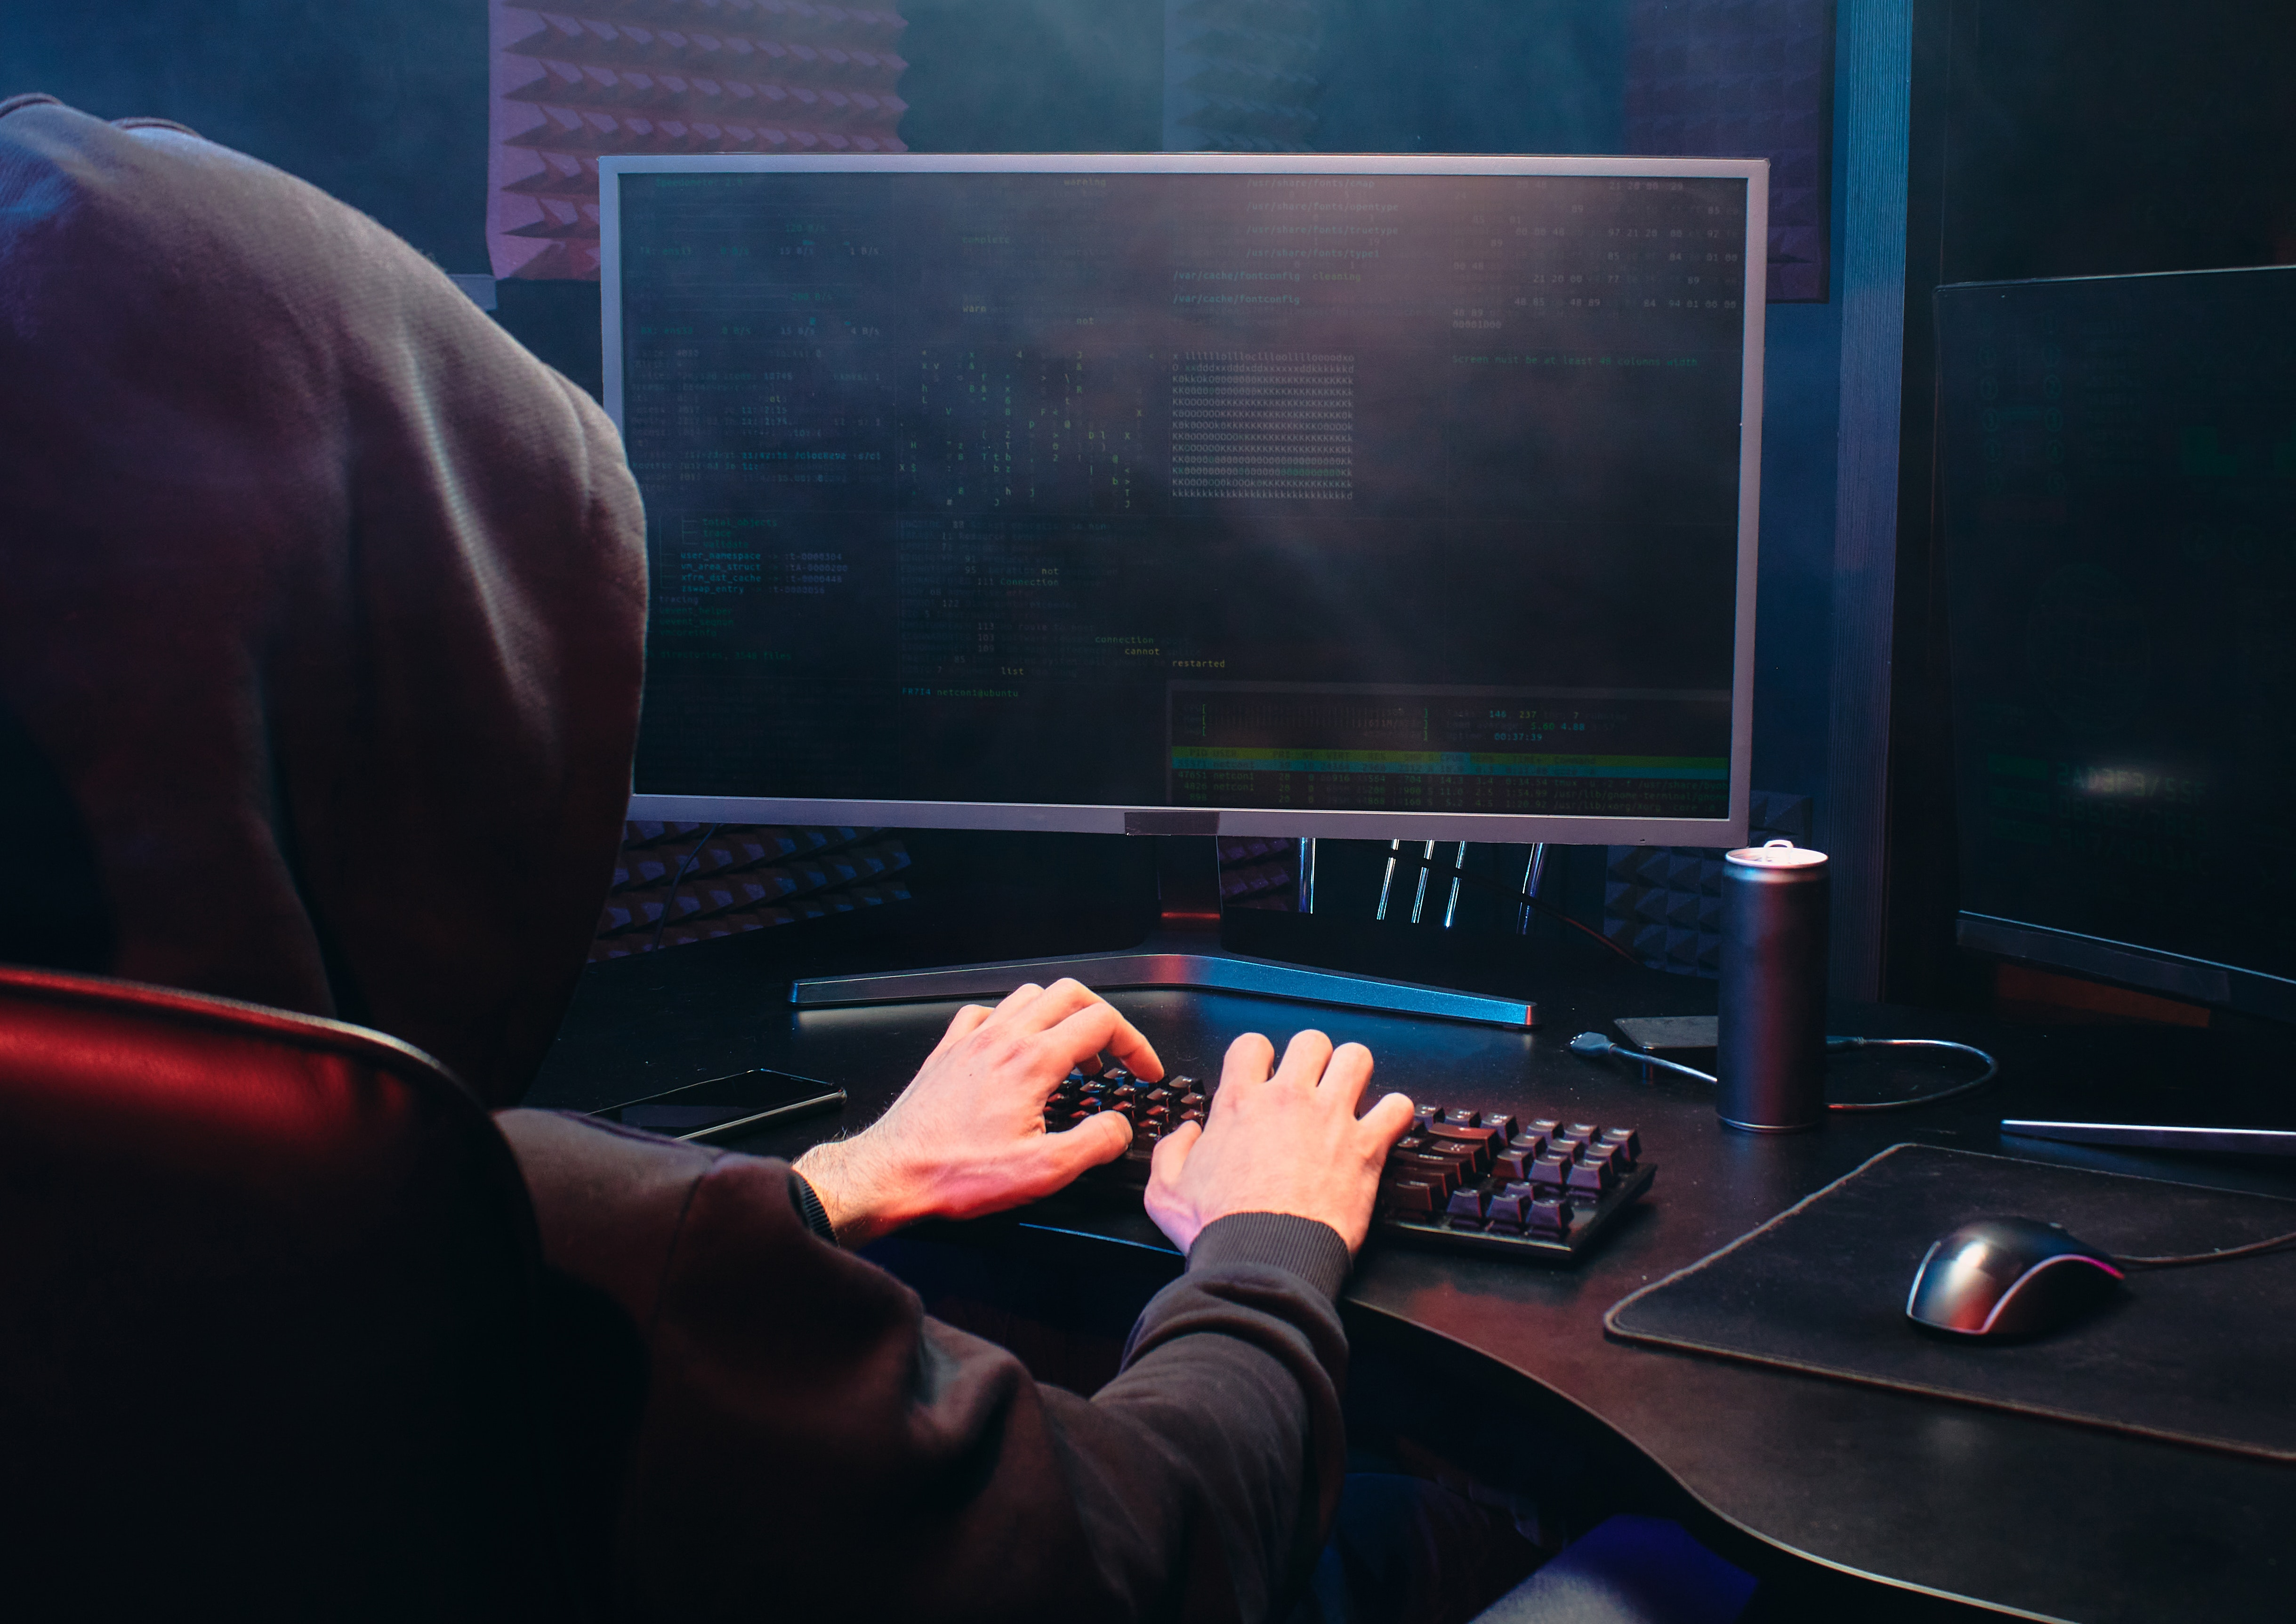 Five ways to help protect your family online